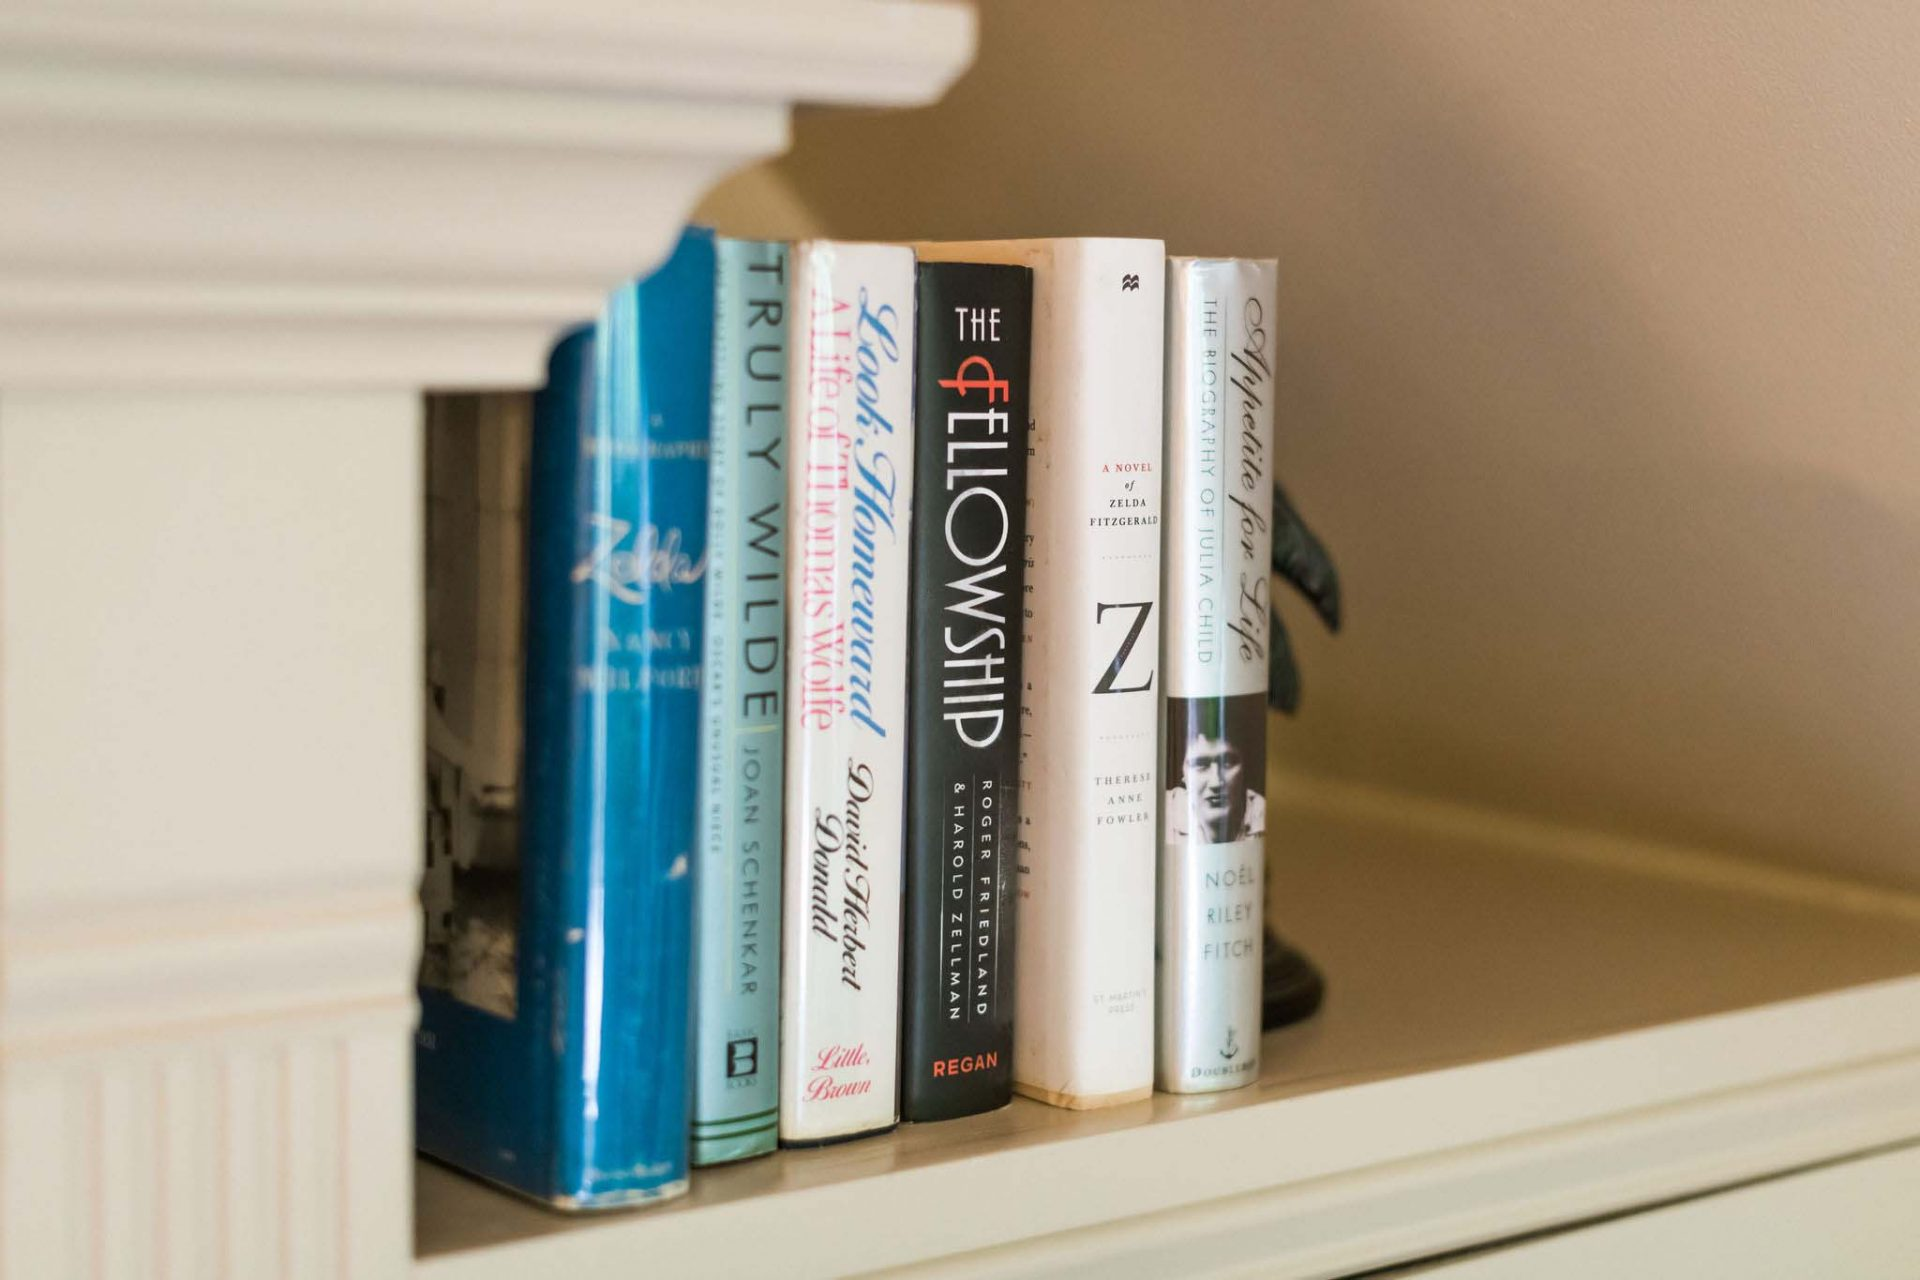 A close-up of six books on a bookshelf in one of the rooms at Inn on Montford, the Asheville bed and breakfast.